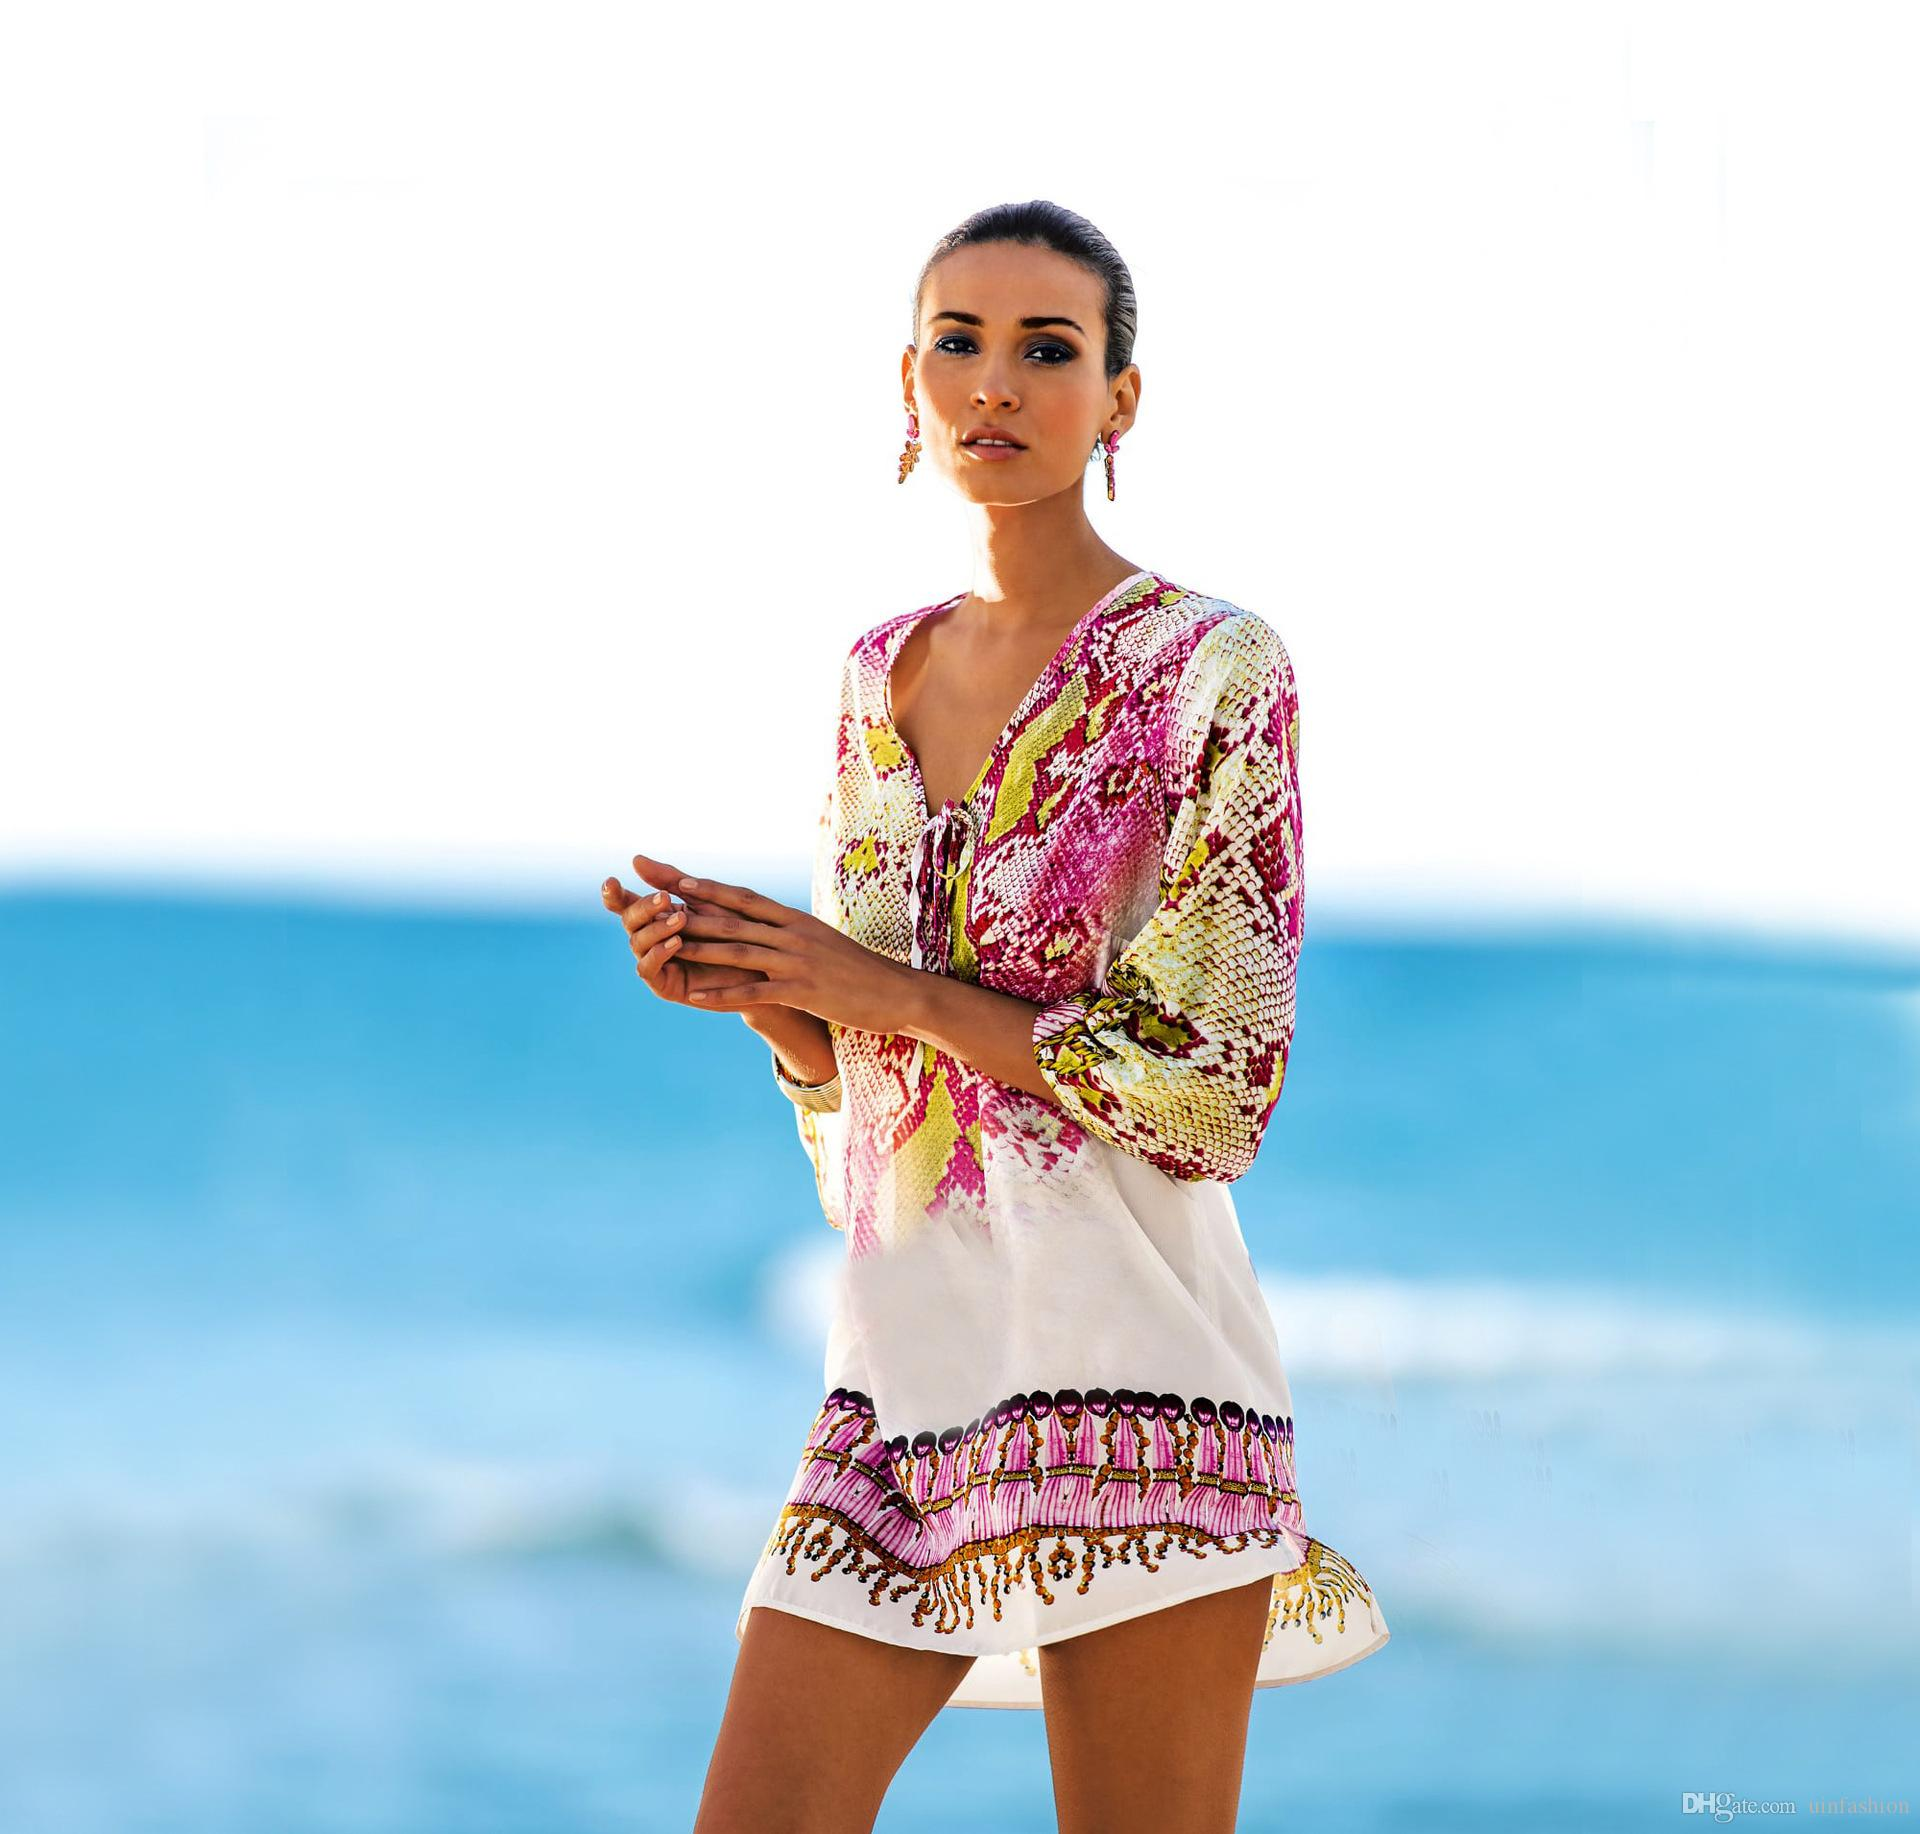 9a31f77fa9 2019 Chiffon Beach Cover Up Ethnic Style Retro Swimwear Women Summer Floral  Print Beachwear Loose Bikinis Wear Cover Ups Hot Sale From Uinfashion, ...